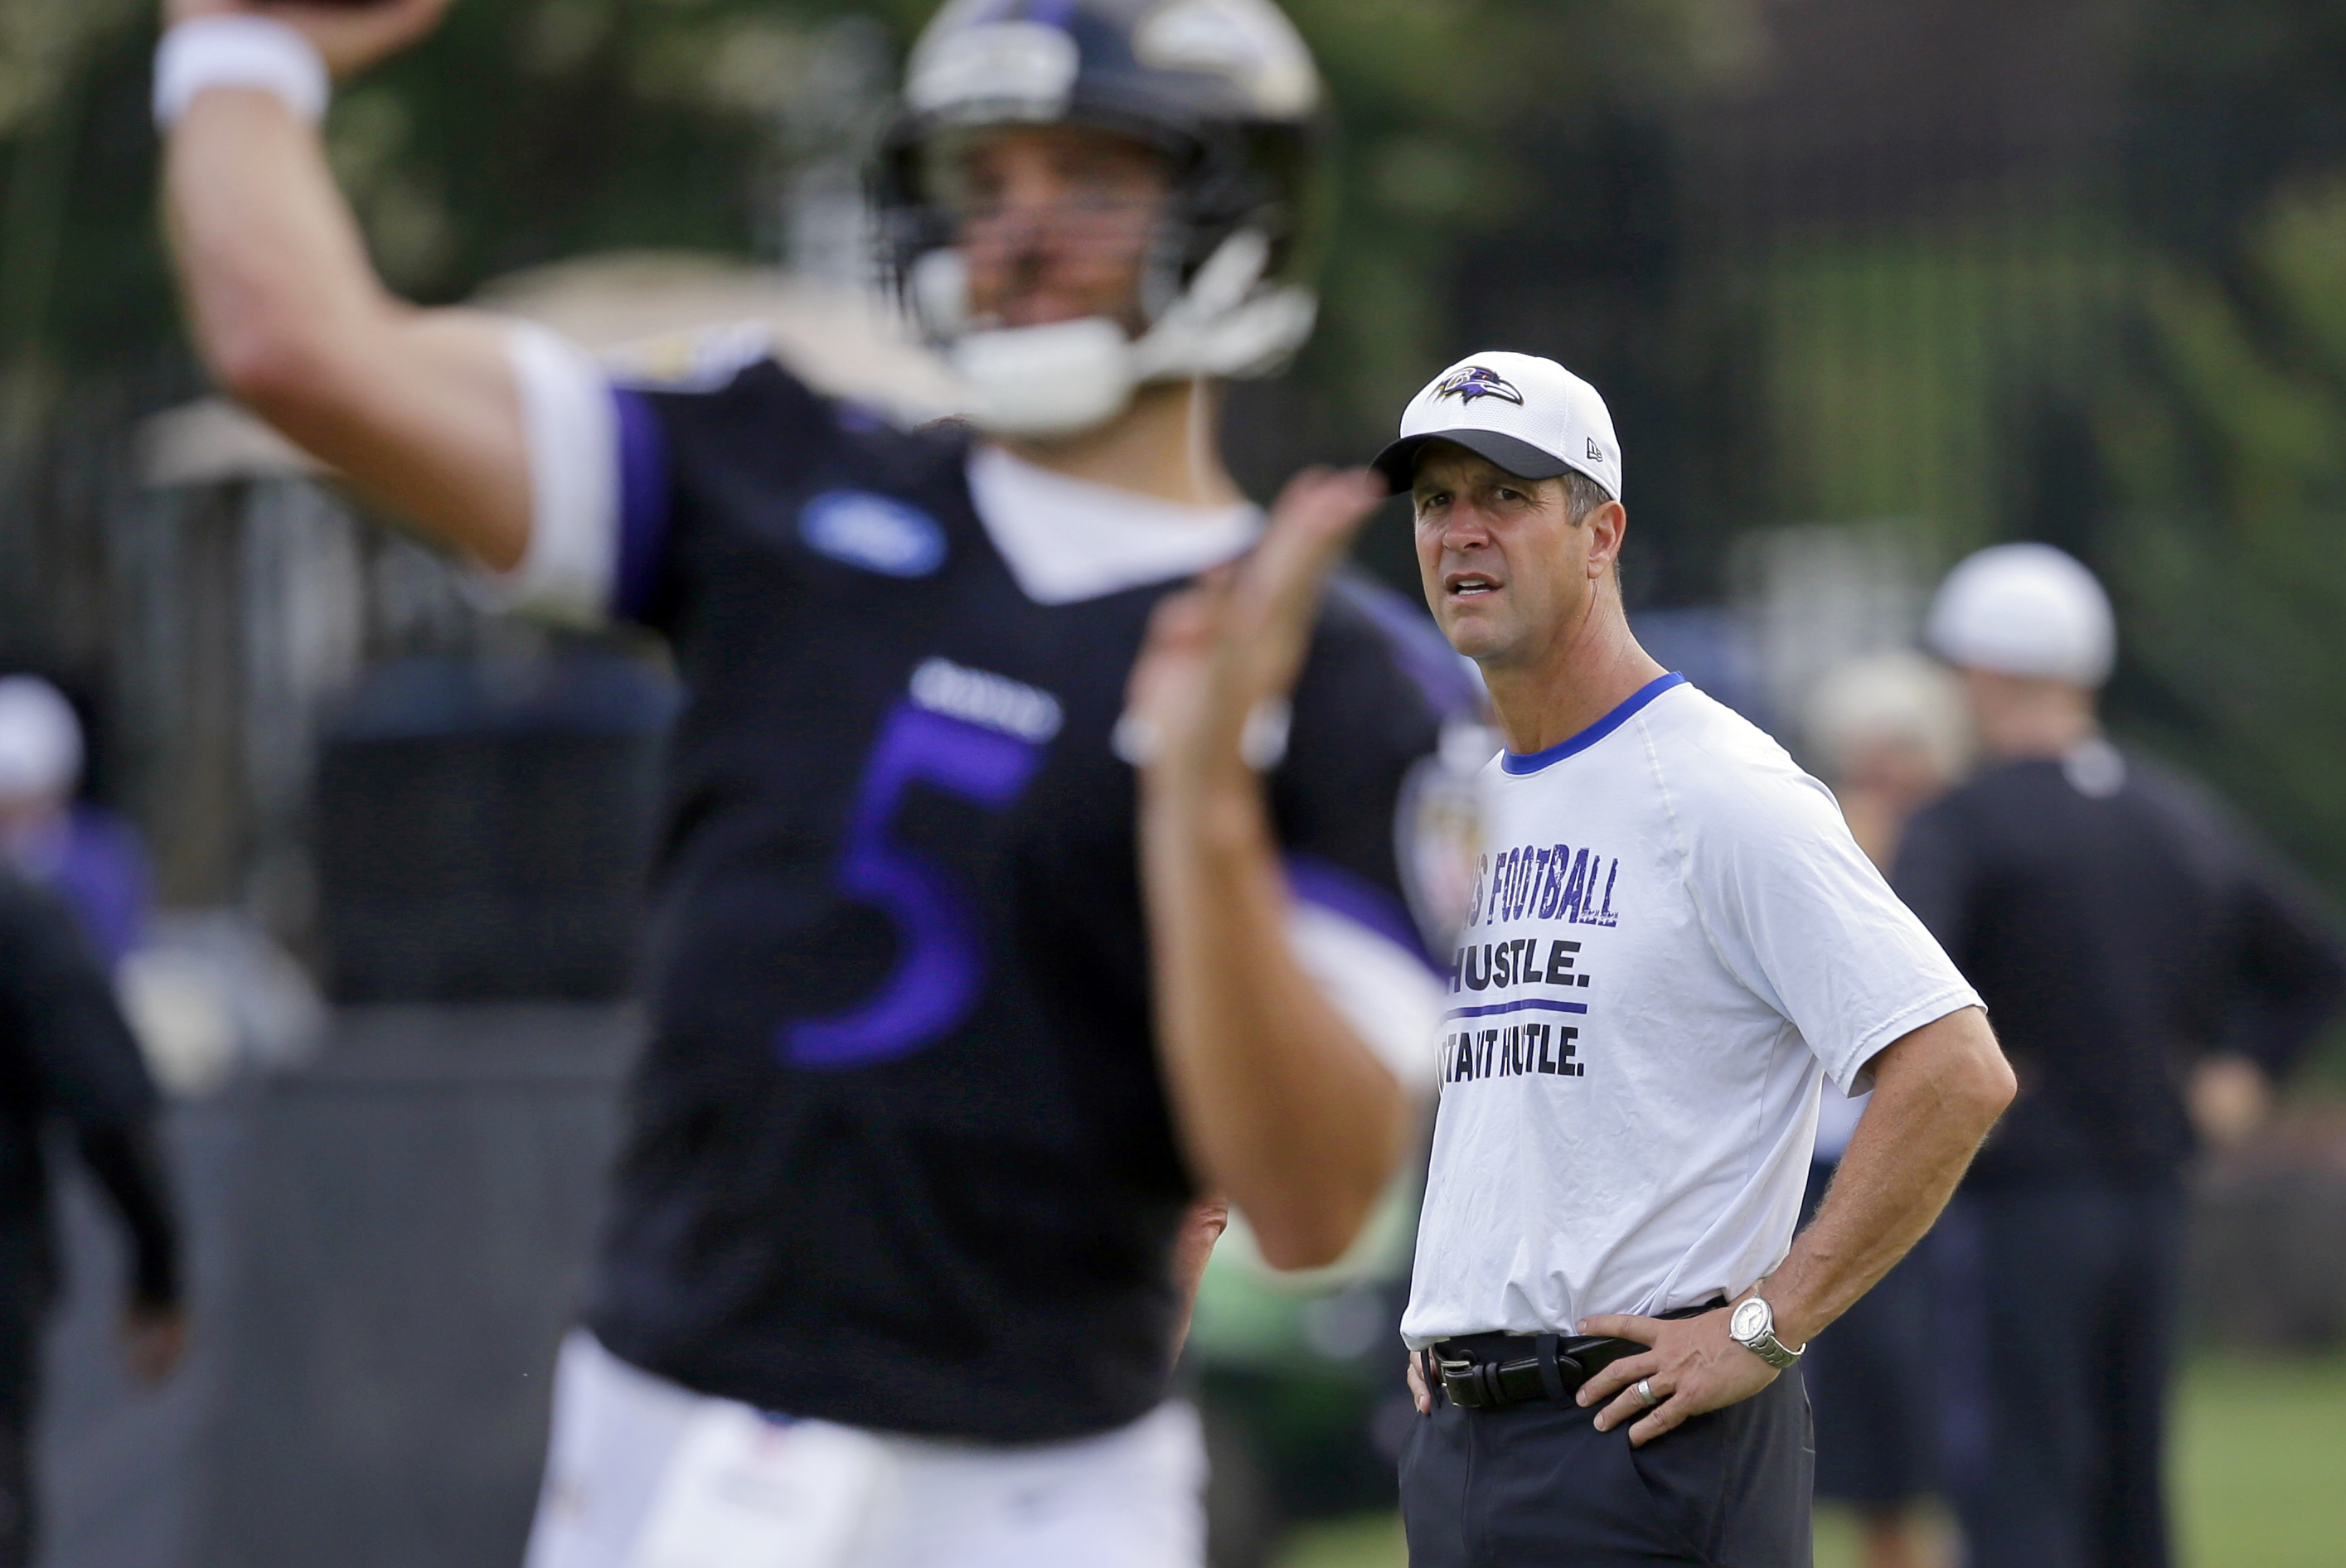 Baltimore Ravens head coach John Harbaugh, right, watches quarterback Joe Flacco throw a pass at the team's first day of NFL football training camp, Thursday, July 30, 2015, in Owings Mills, Md. (AP Photo/Patrick Semansky)